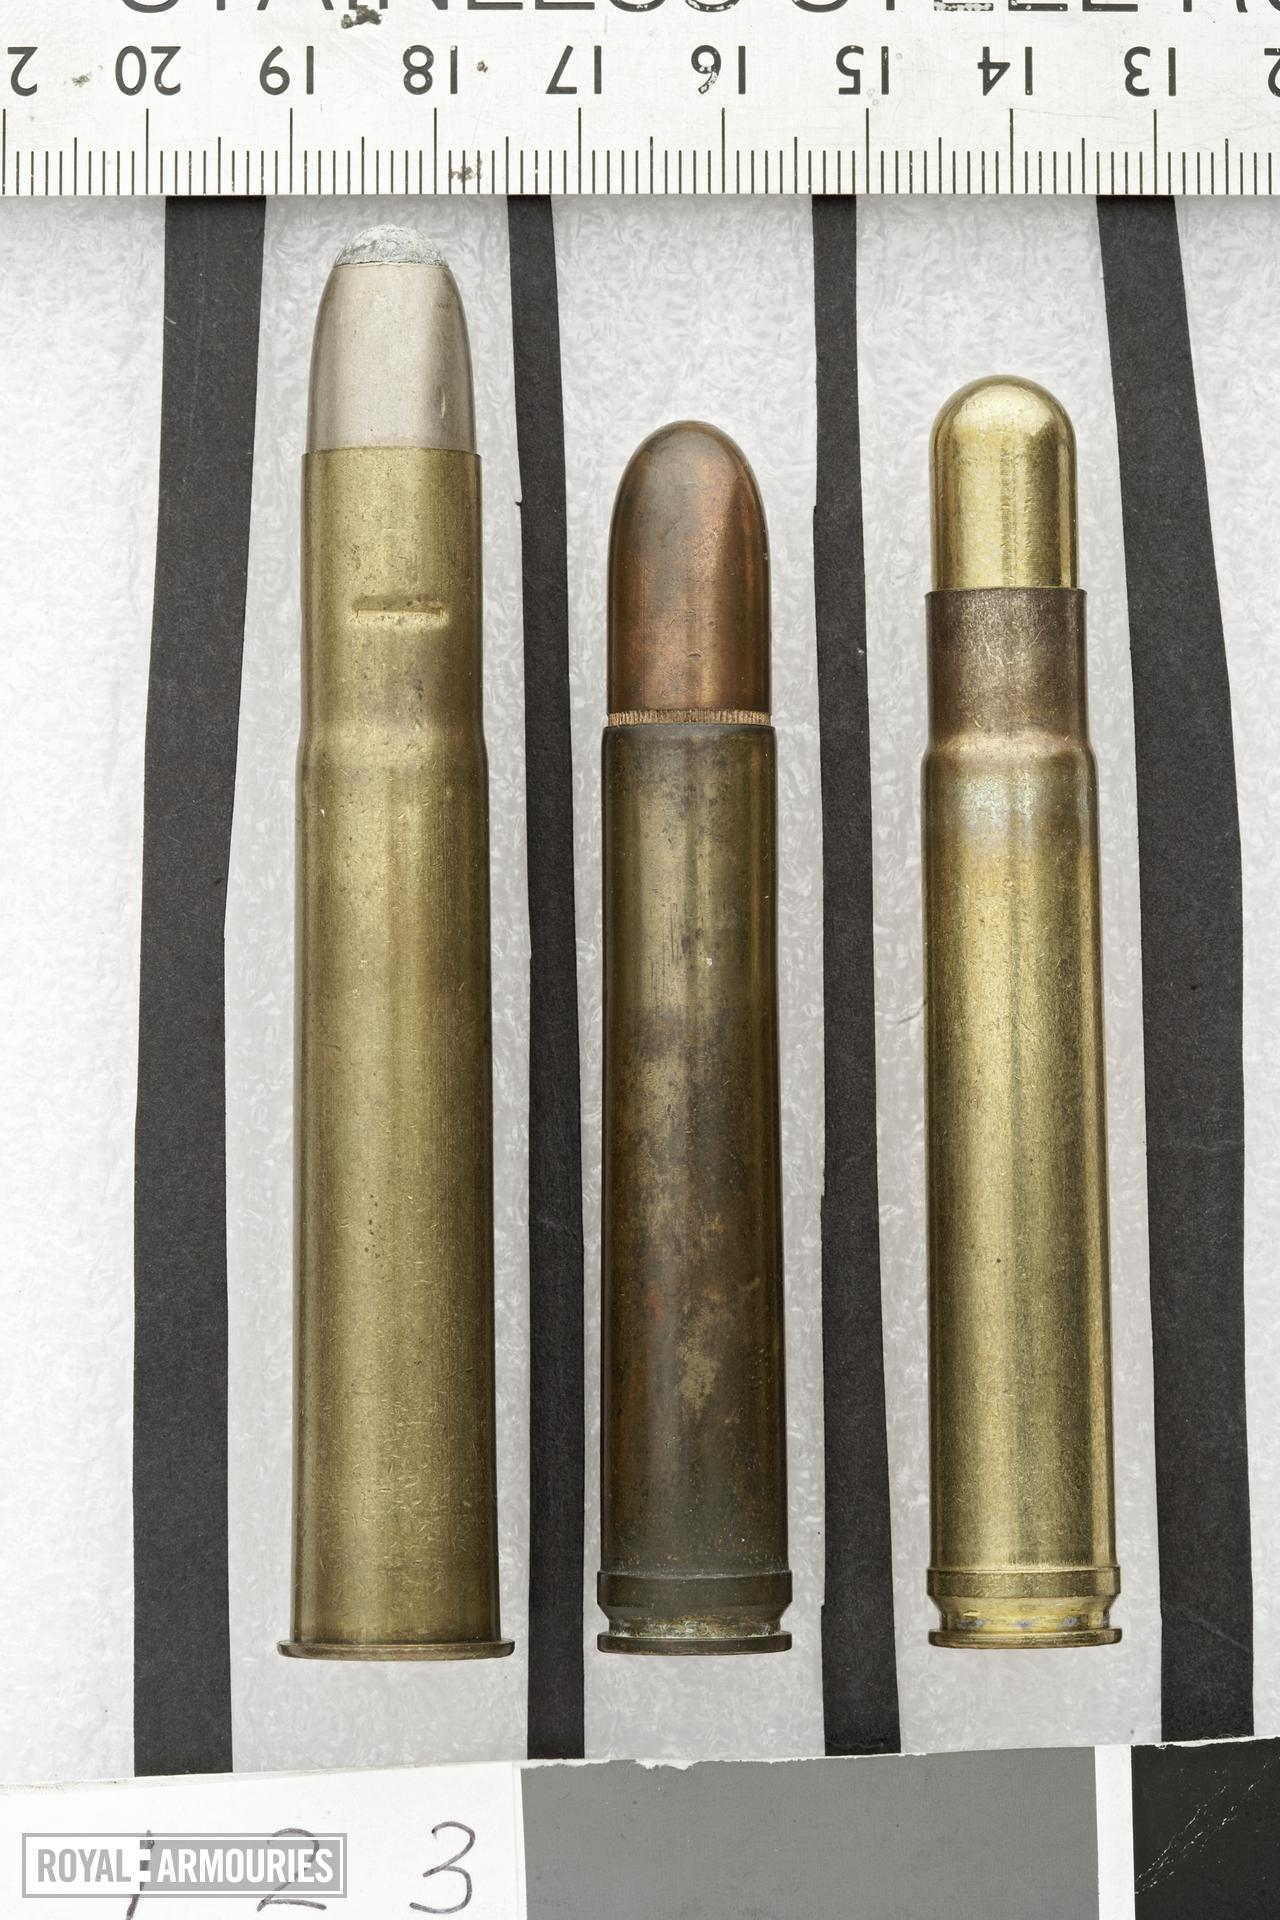 Centrefire rifle cartridge - .416 in Remington Magnum